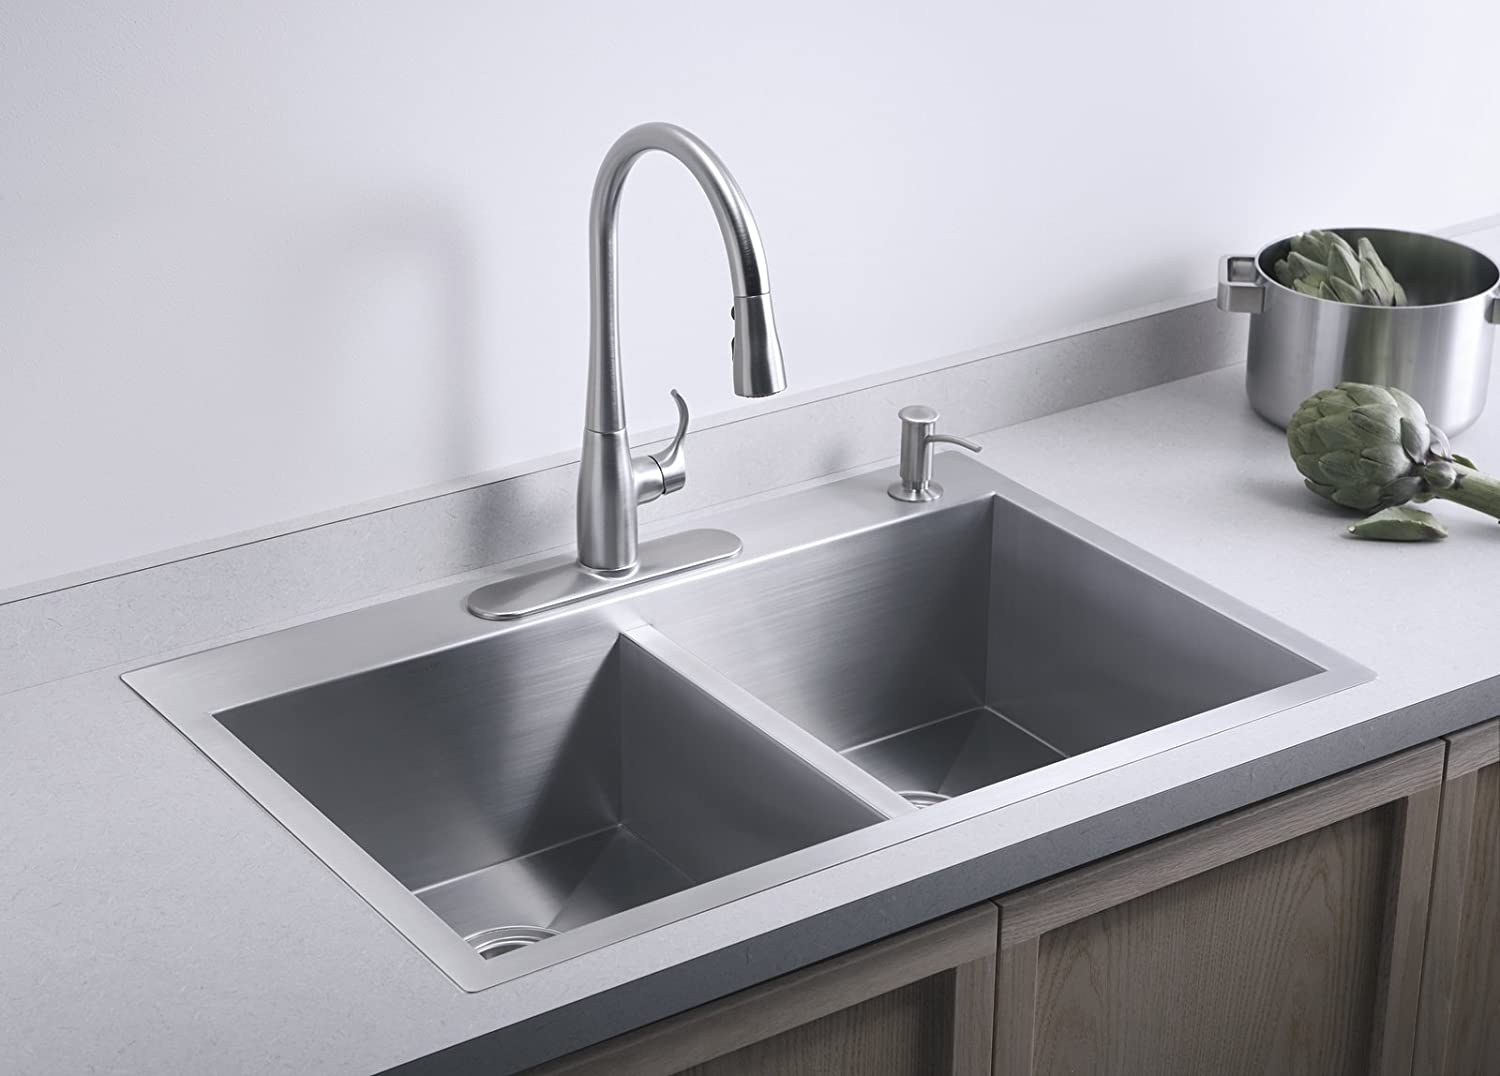 Kohler k 3820 4 na vault double equal kitchen sink with four hole kohler k 3820 4 na vault double equal kitchen sink with four hole faucet drilling double bowl sinks amazon workwithnaturefo